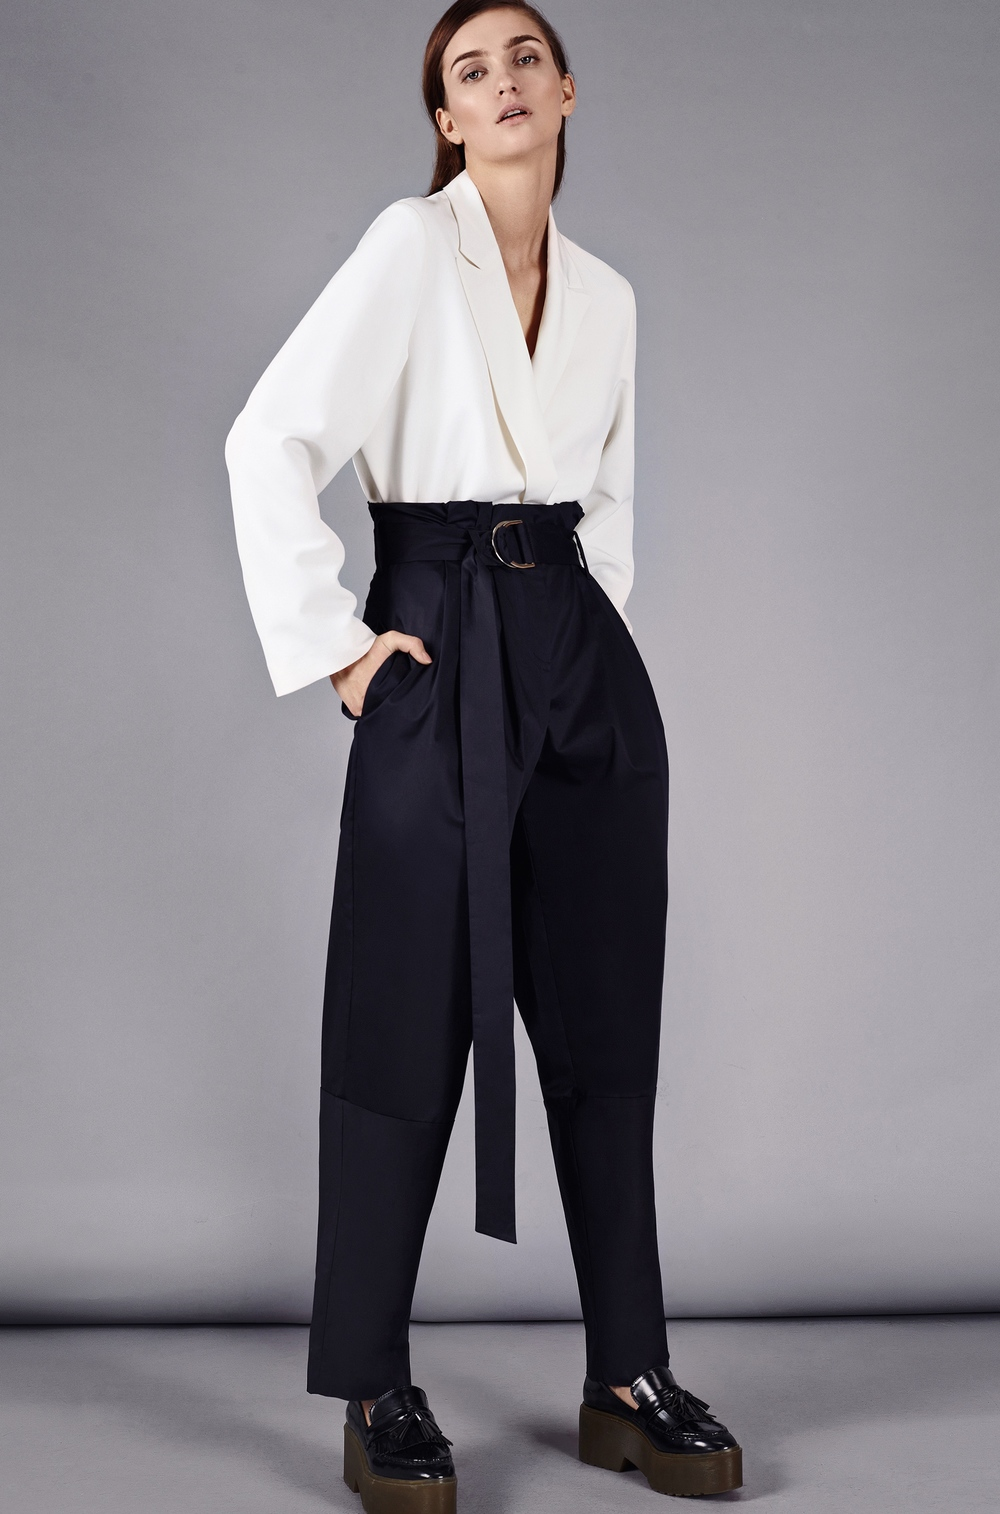 slightly_high-waisted_trousers_notjustalabel_2031818110.jpg